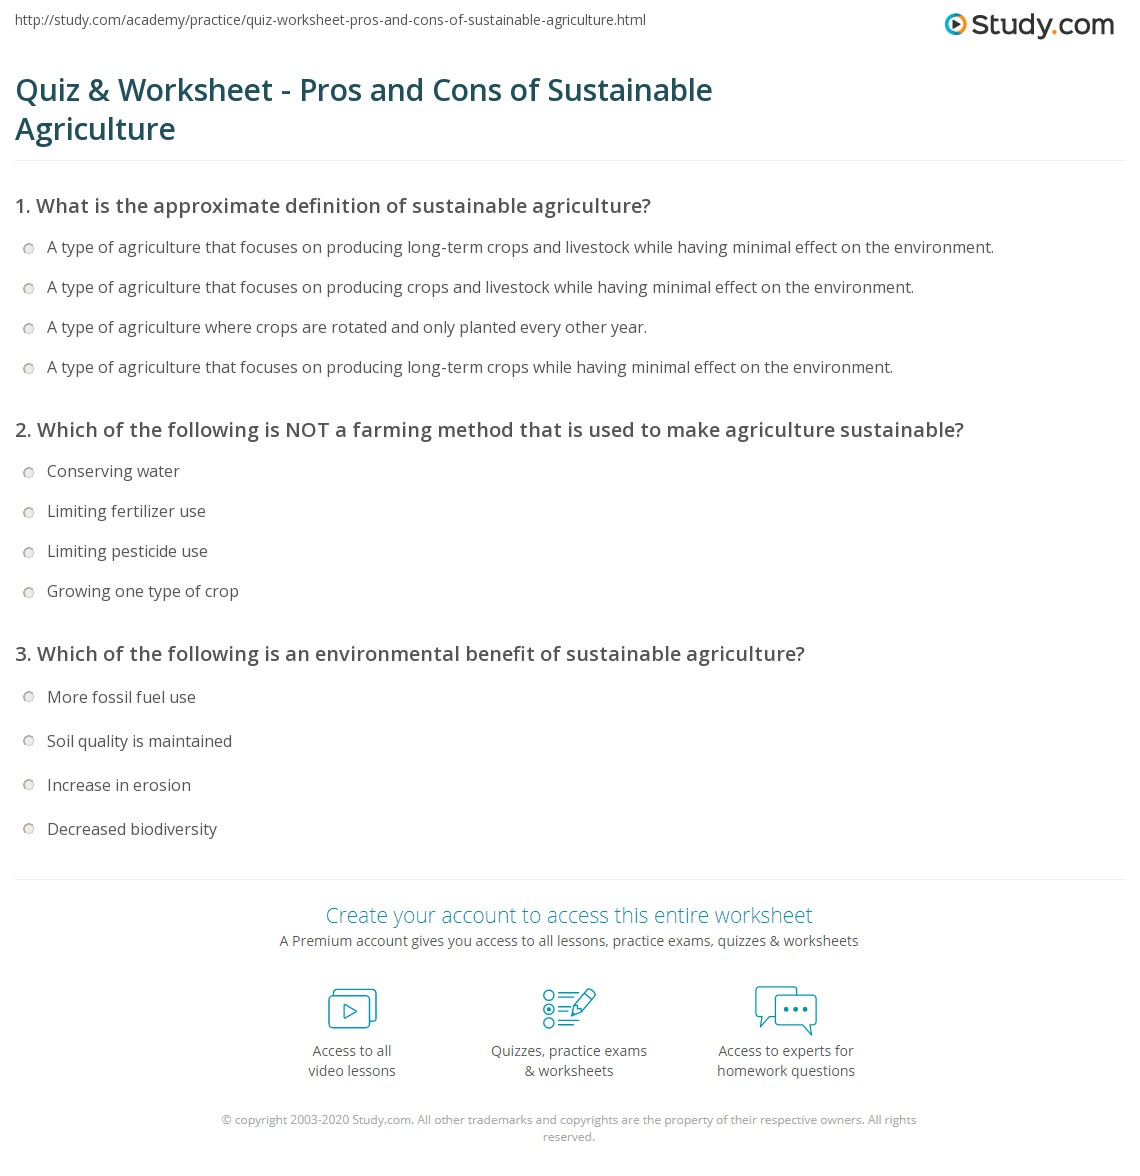 quiz worksheet pros and cons of sustainable agriculture. Black Bedroom Furniture Sets. Home Design Ideas